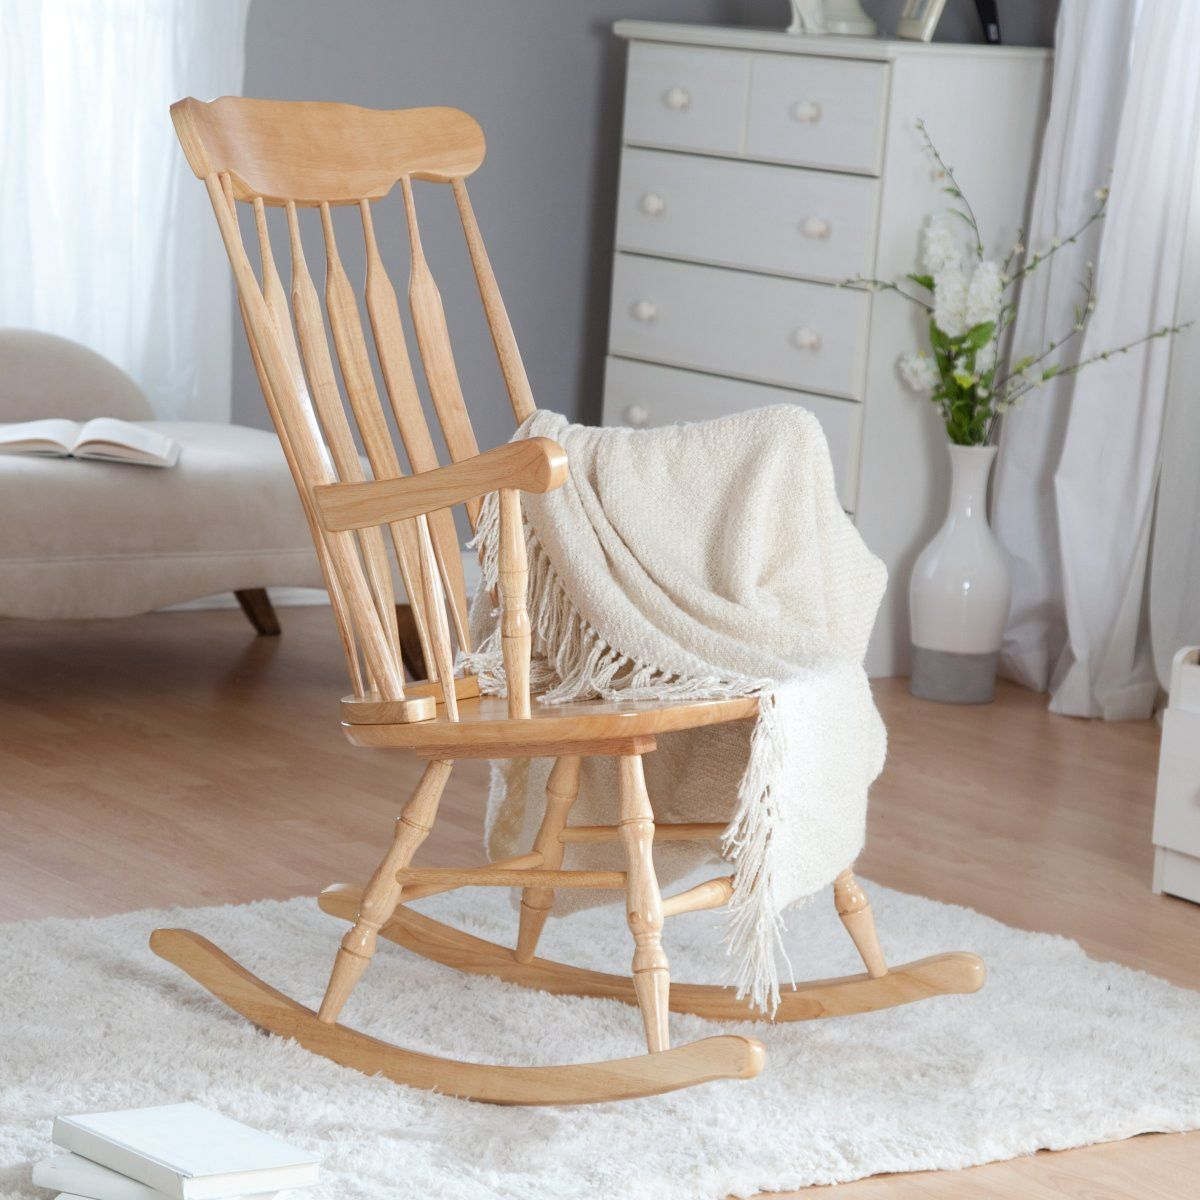 Wooden Rocking Chair For Nursery Wooden Rocking Chairs Nursery Large Home Office Furniture Check